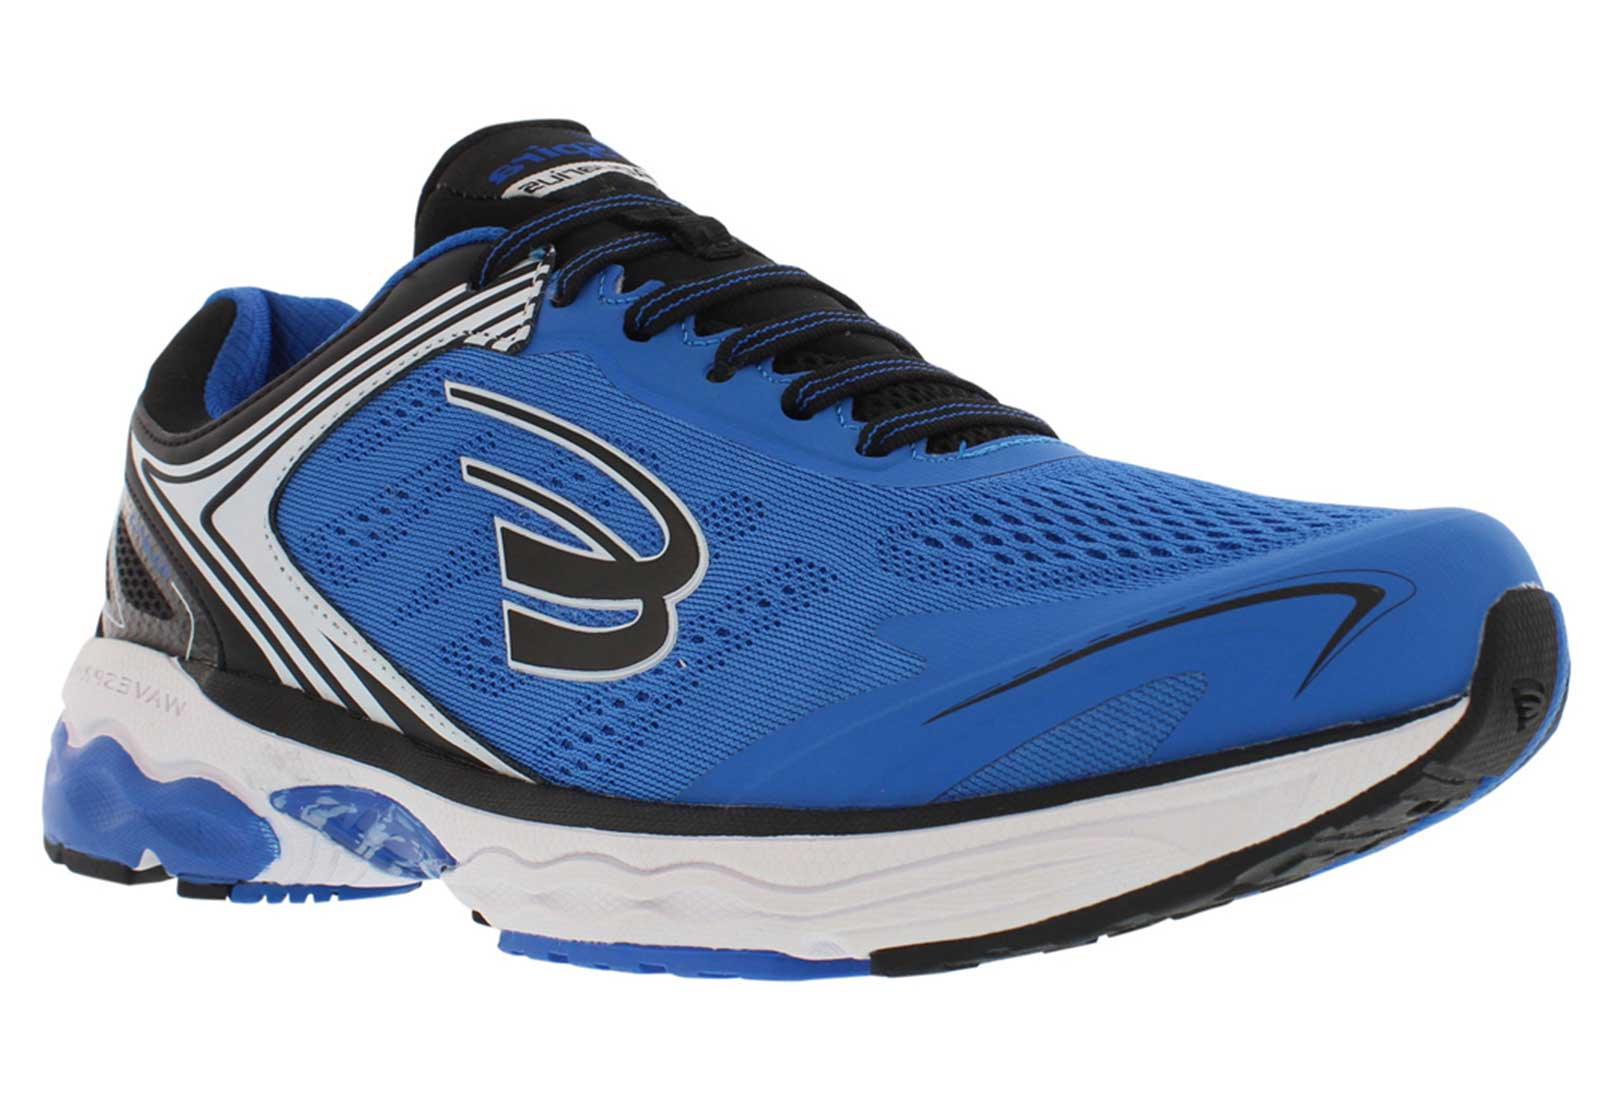 Spira Footwear - Men's Aquarius Running Shoe